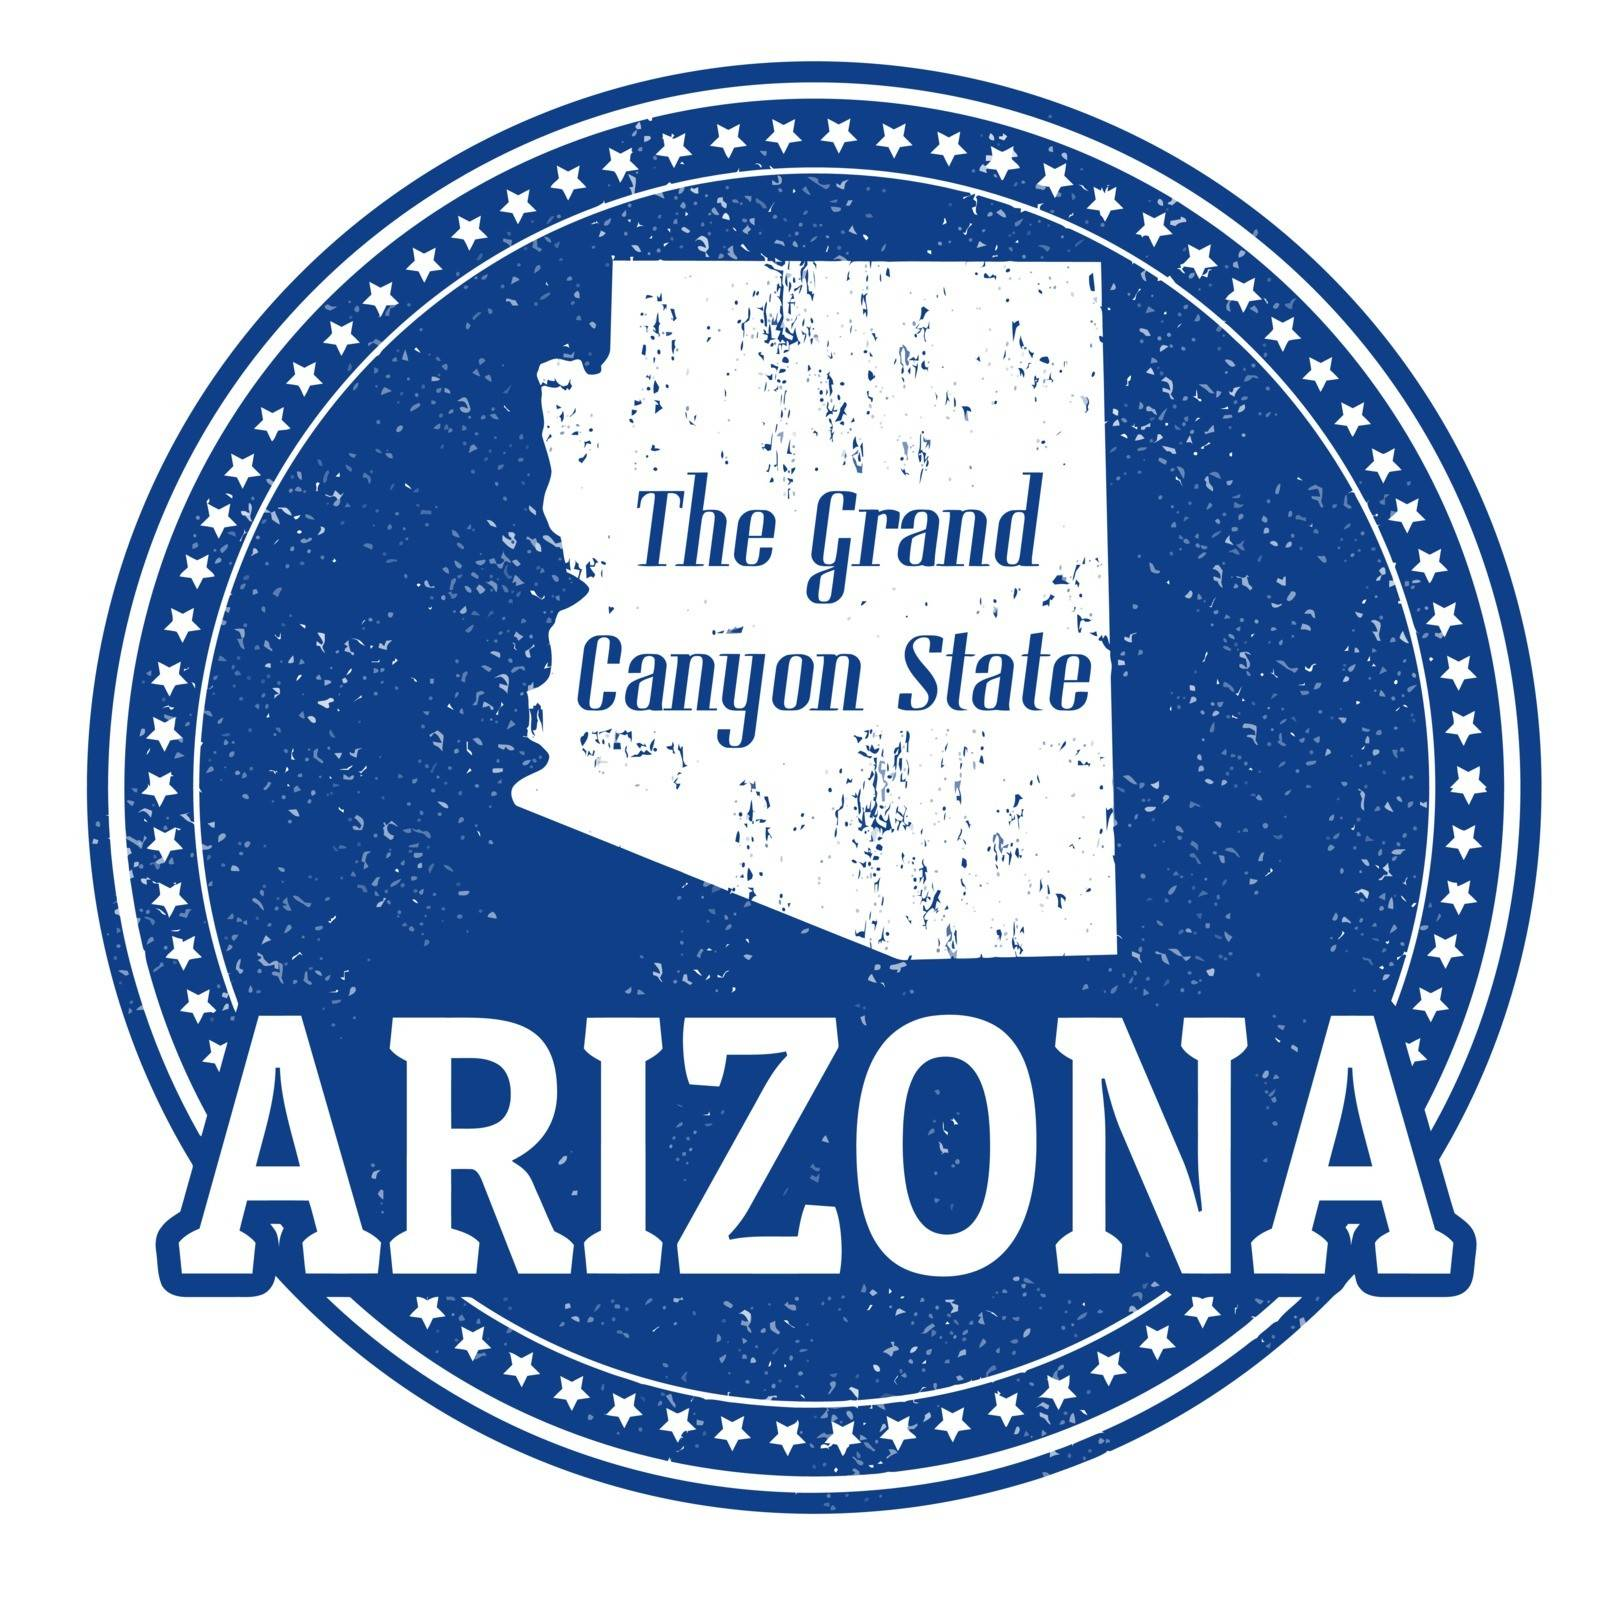 Vintage stamp with text The Grand Canyon State written inside and map of Arizona, vector illustration